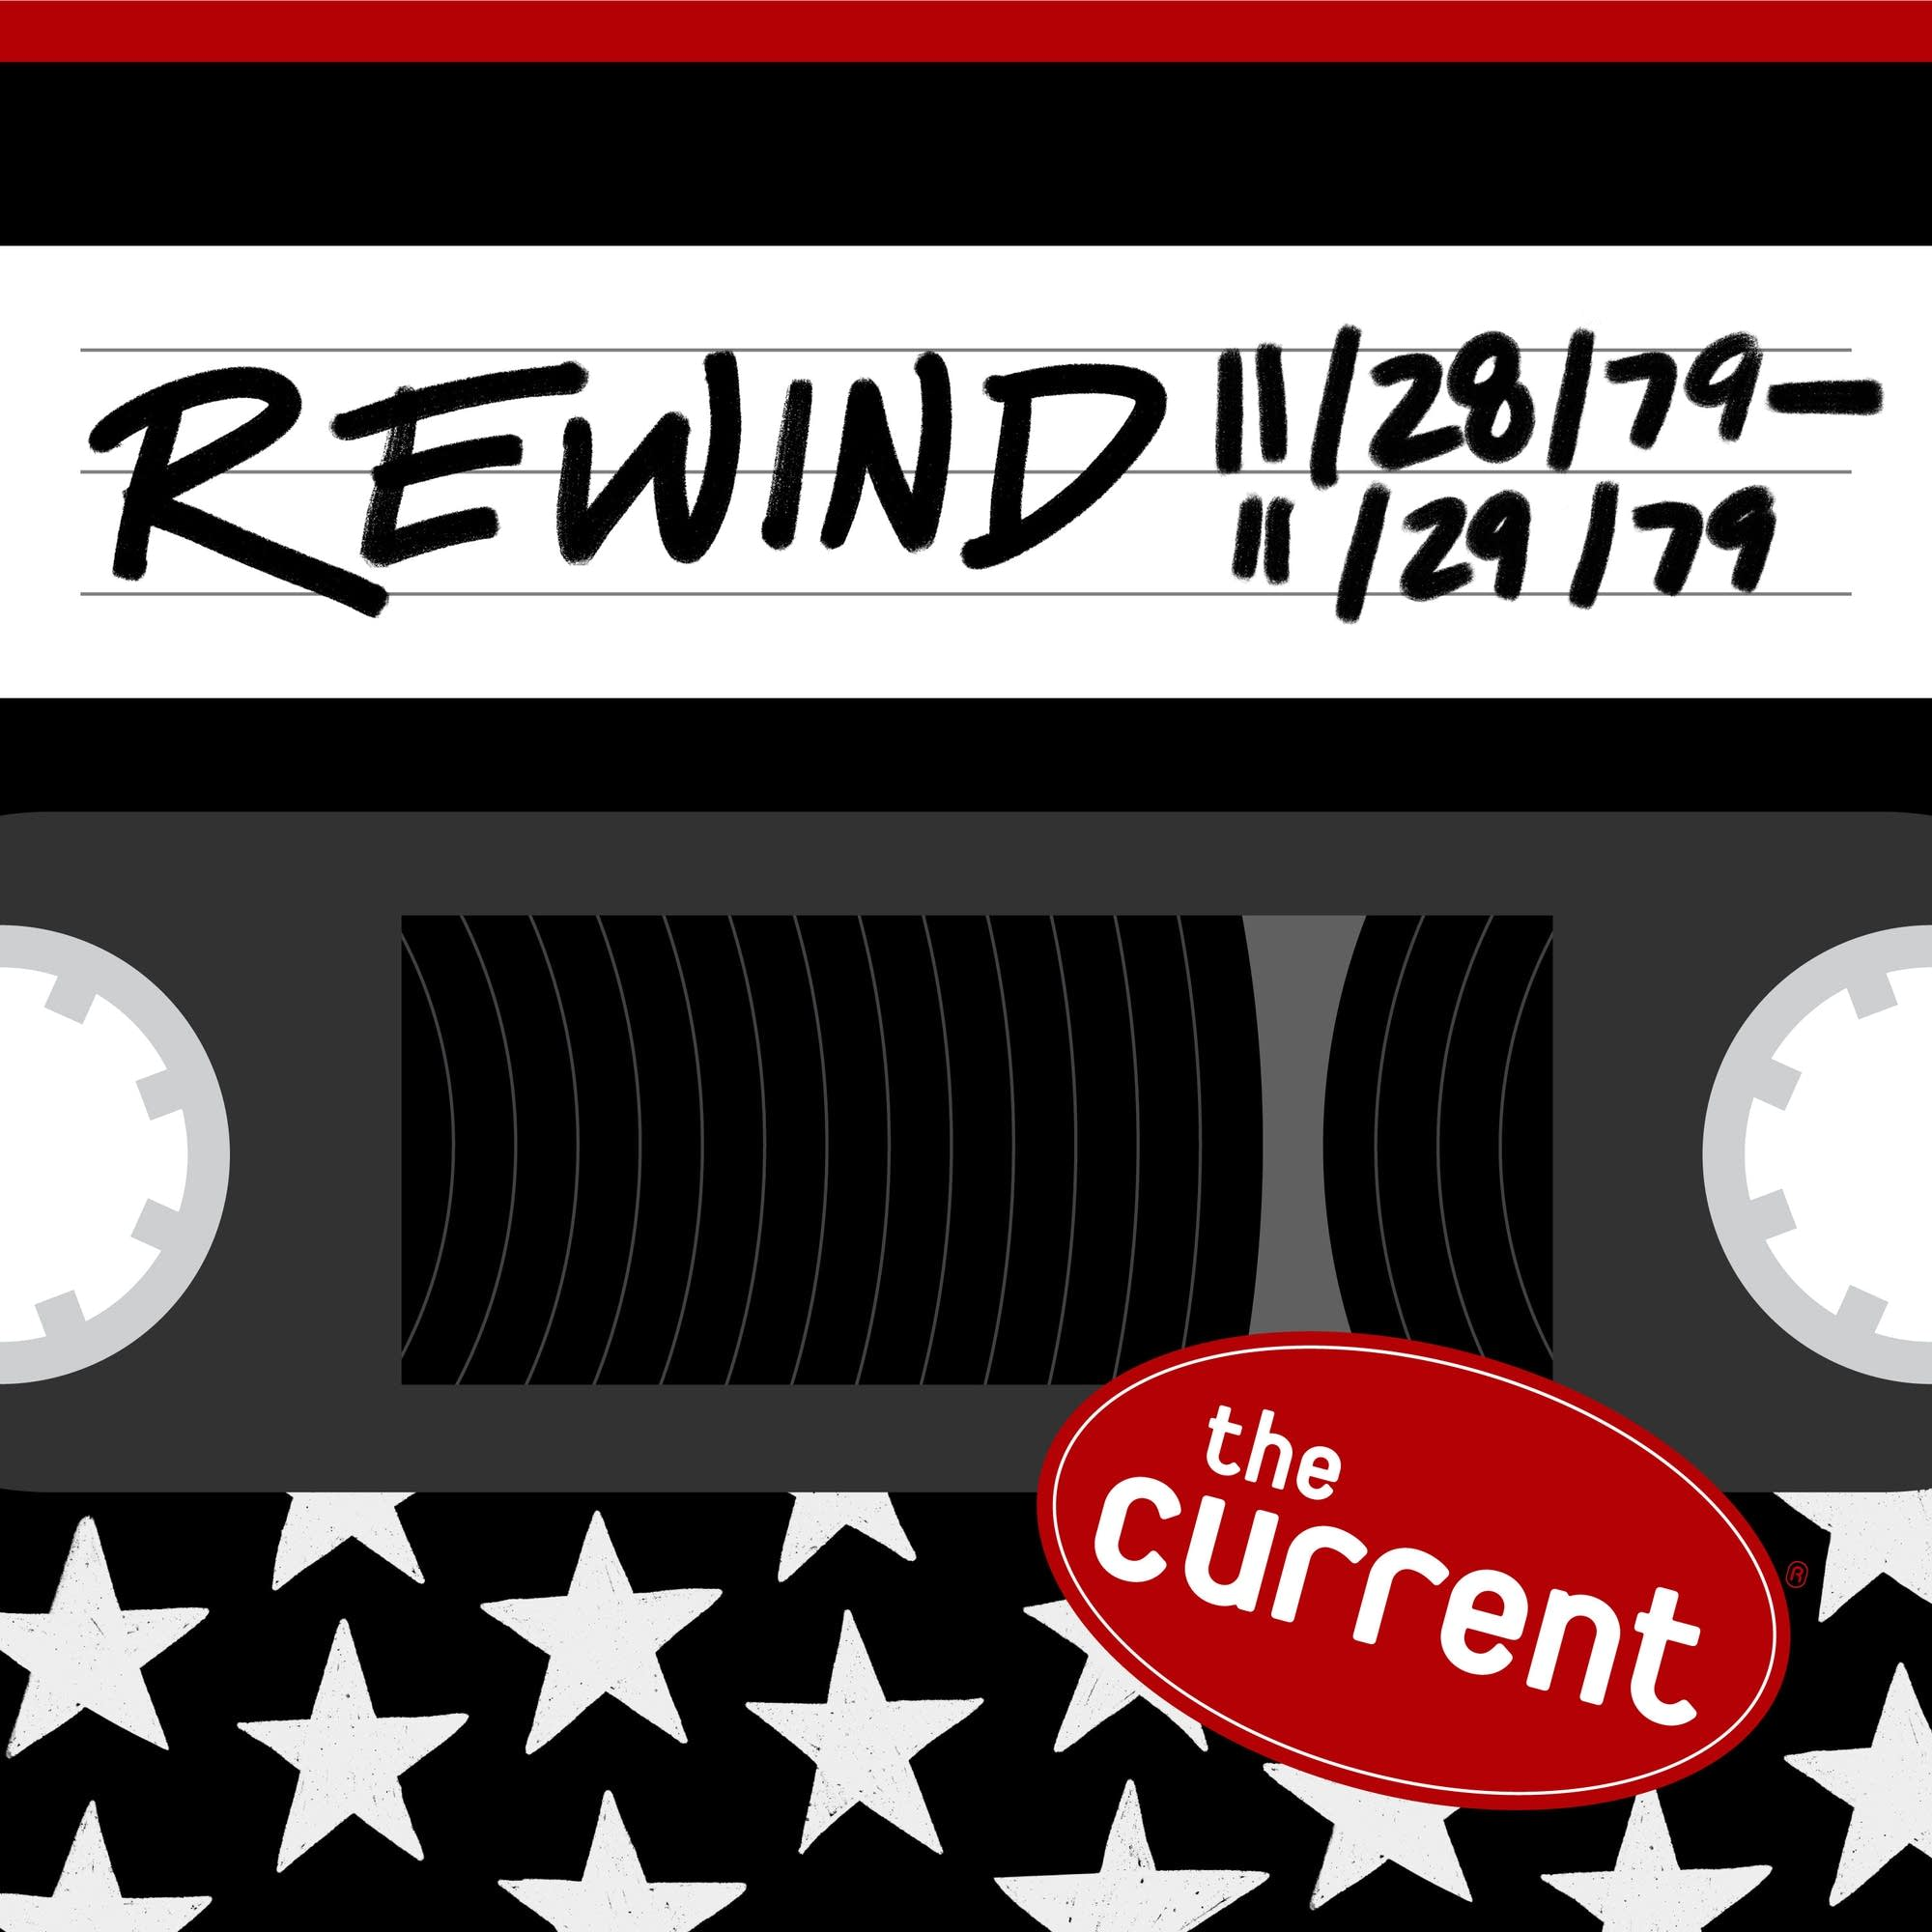 The Current Rewind: 11/28/79-11/29/79